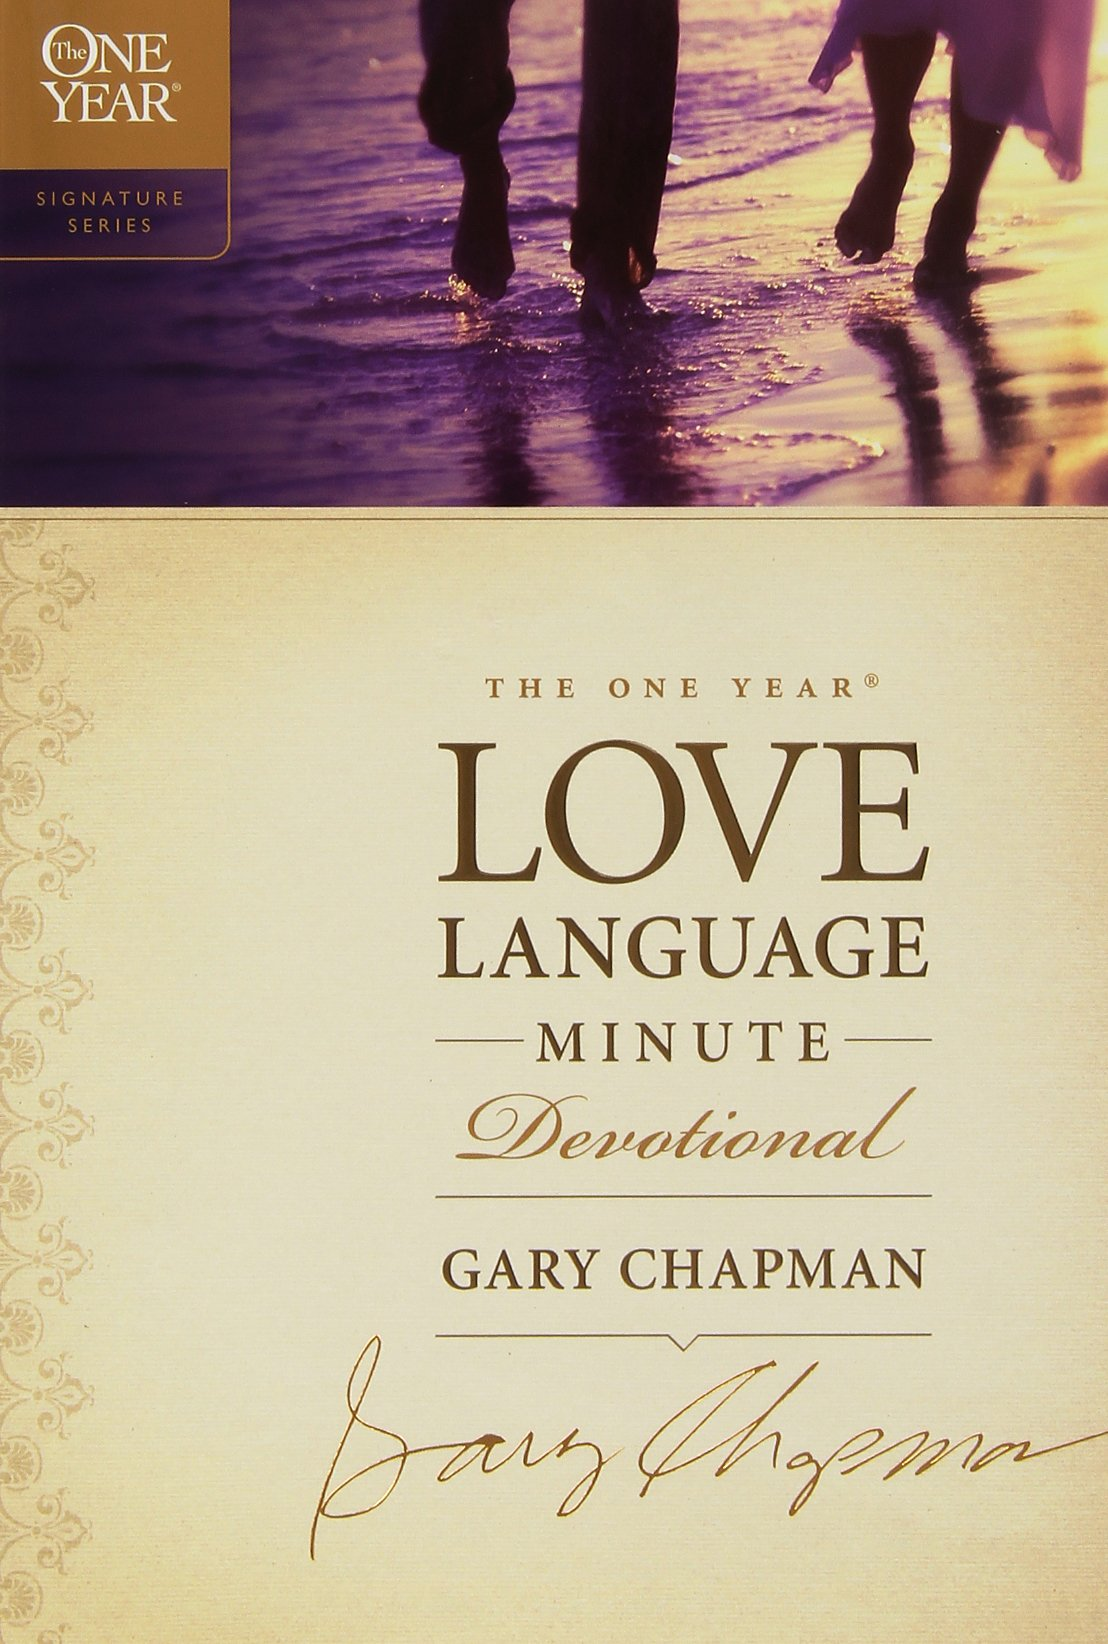 Best devotional books for married couples